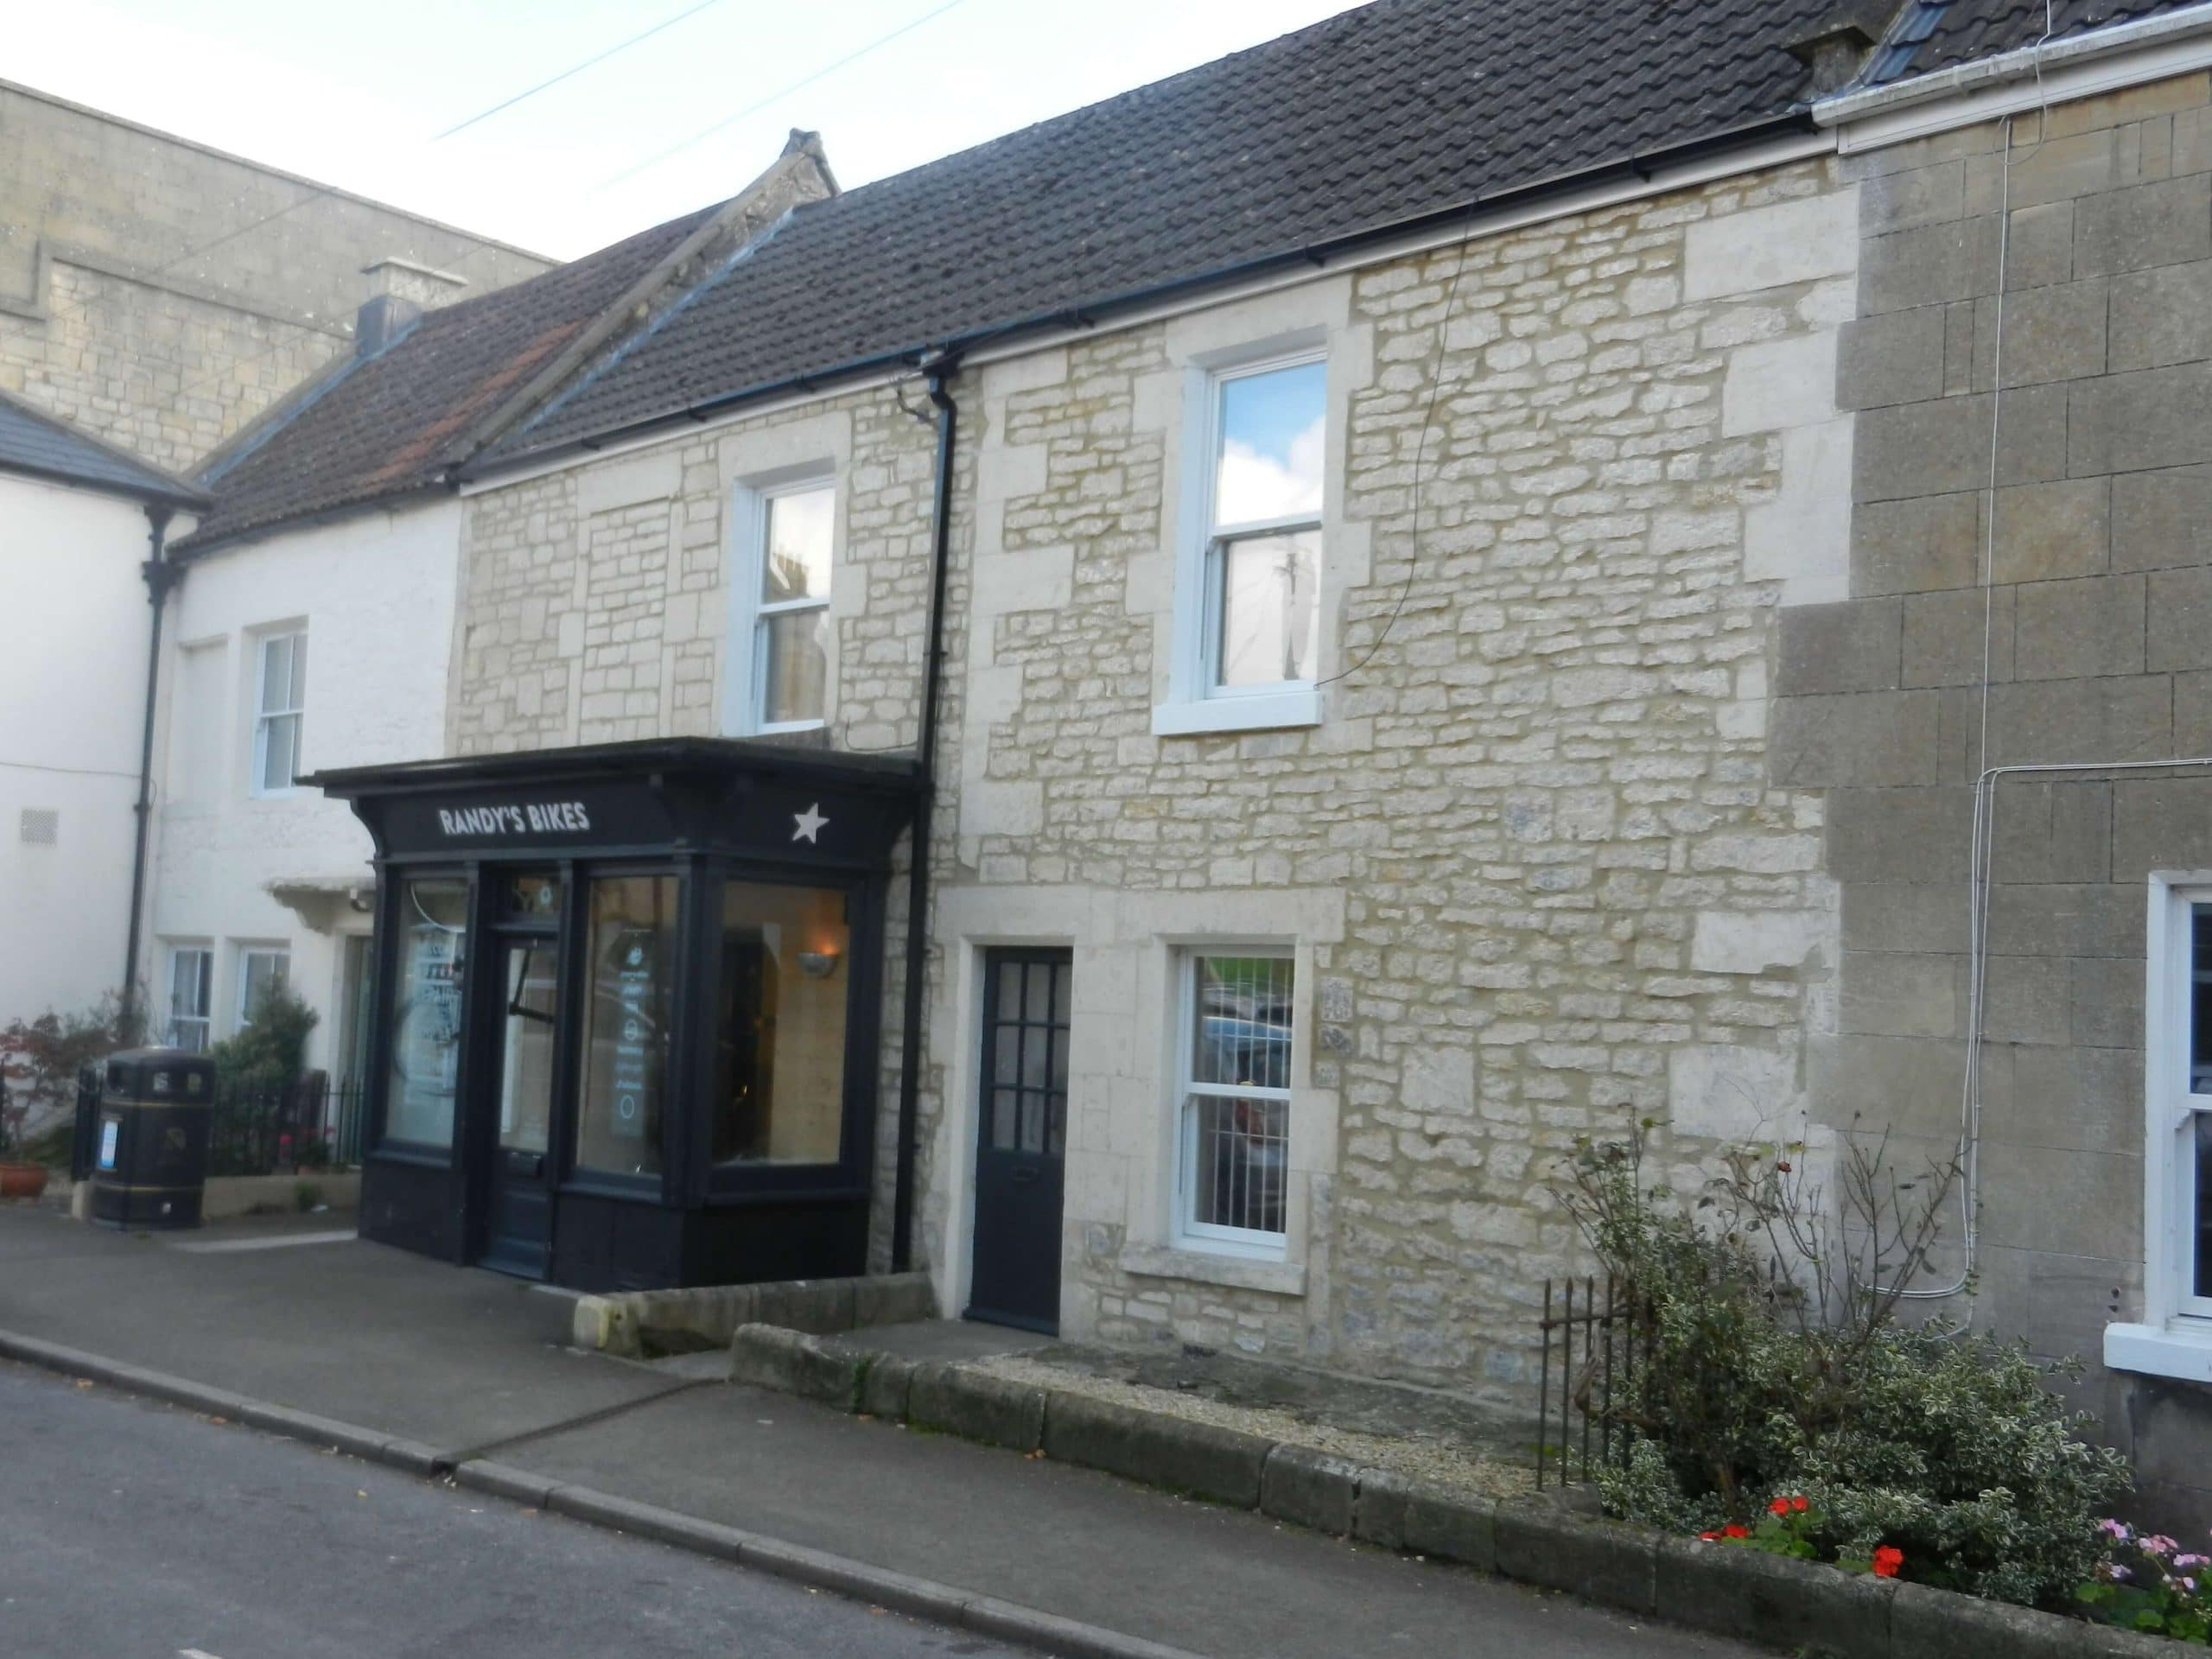 The Carriage Inn, Combe Down - now Randy's bike shop